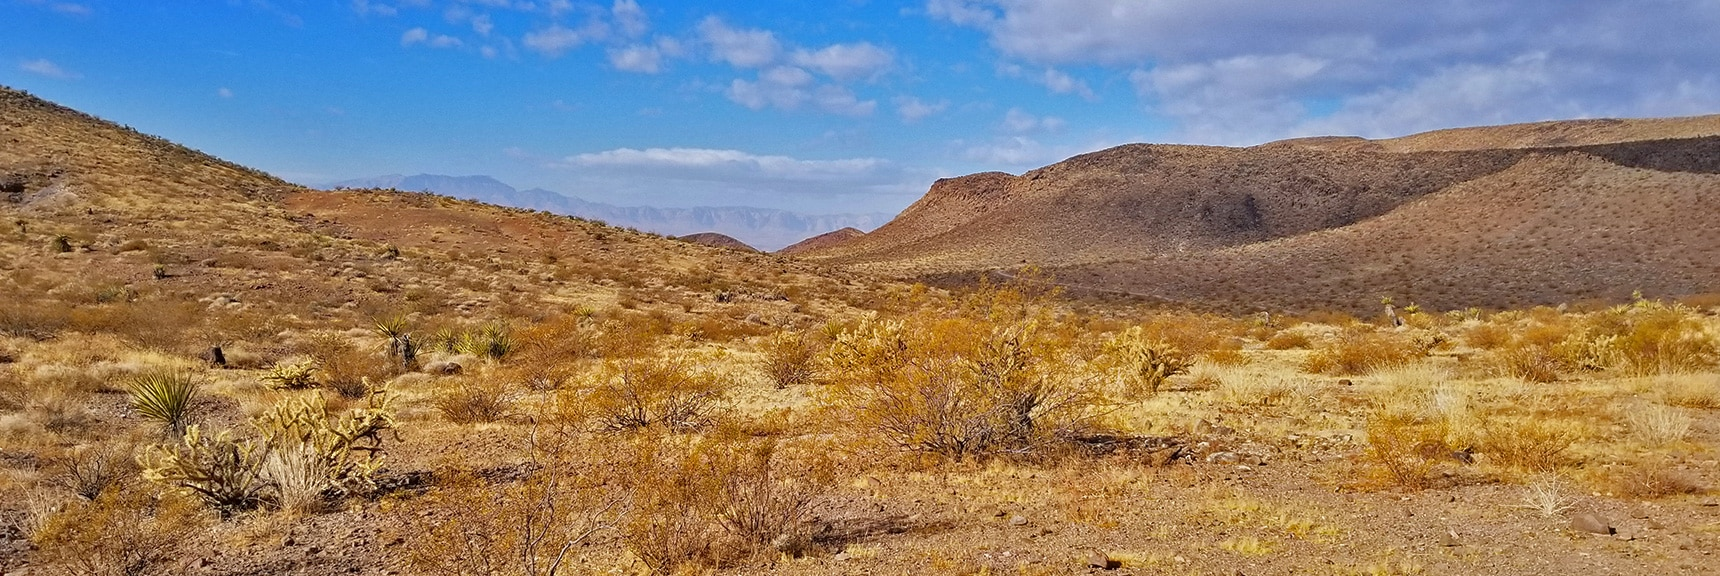 First View Toward the Las Vegas Valley and Across to Red Rock Park Area   McCullough Hills Trail in Sloan Canyon National Conservation Area, Nevada